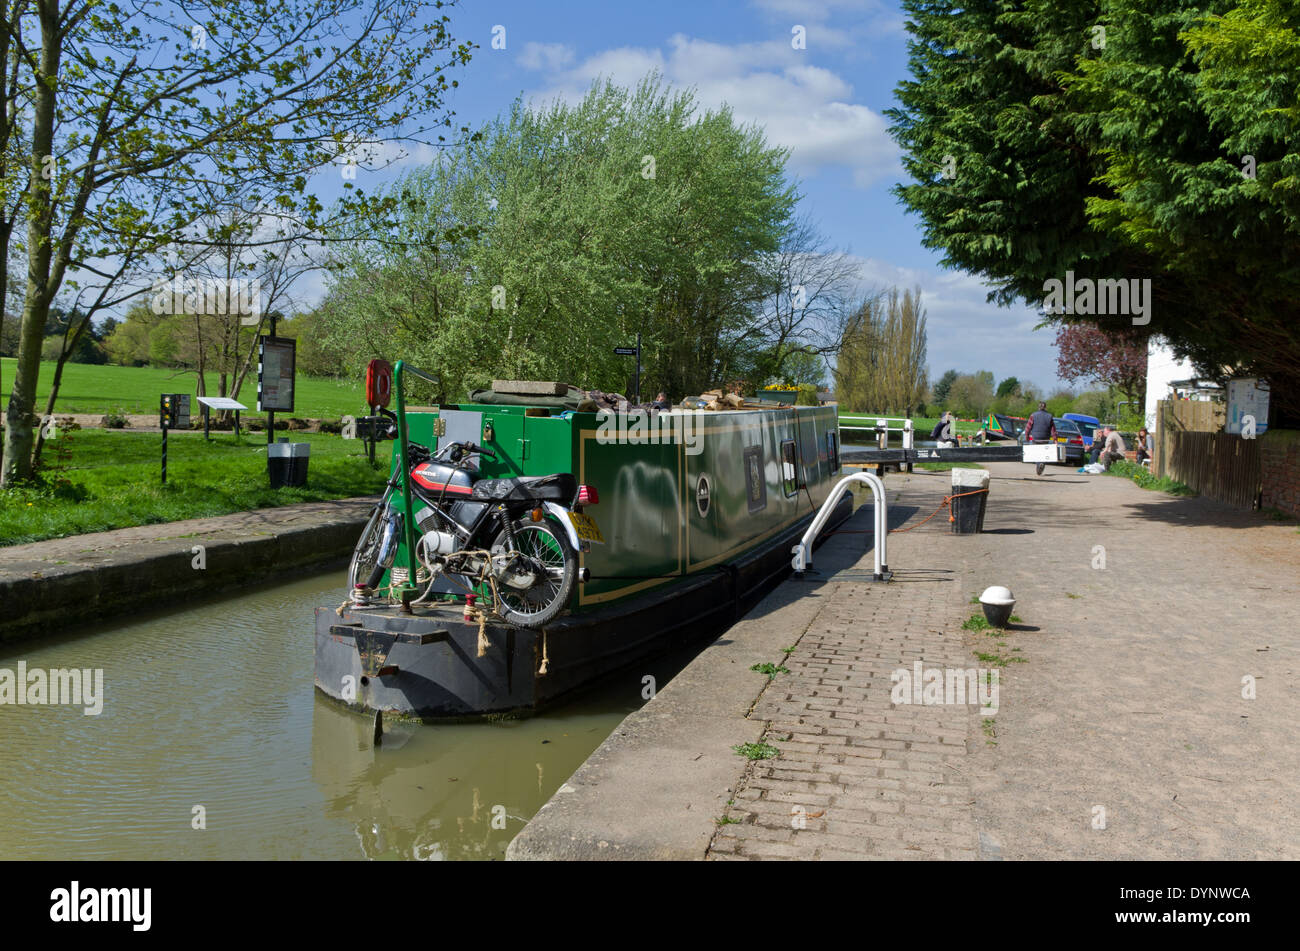 Bicycle strapped to the back of a moored narrowboat, Cosgrove, UK - Stock Image